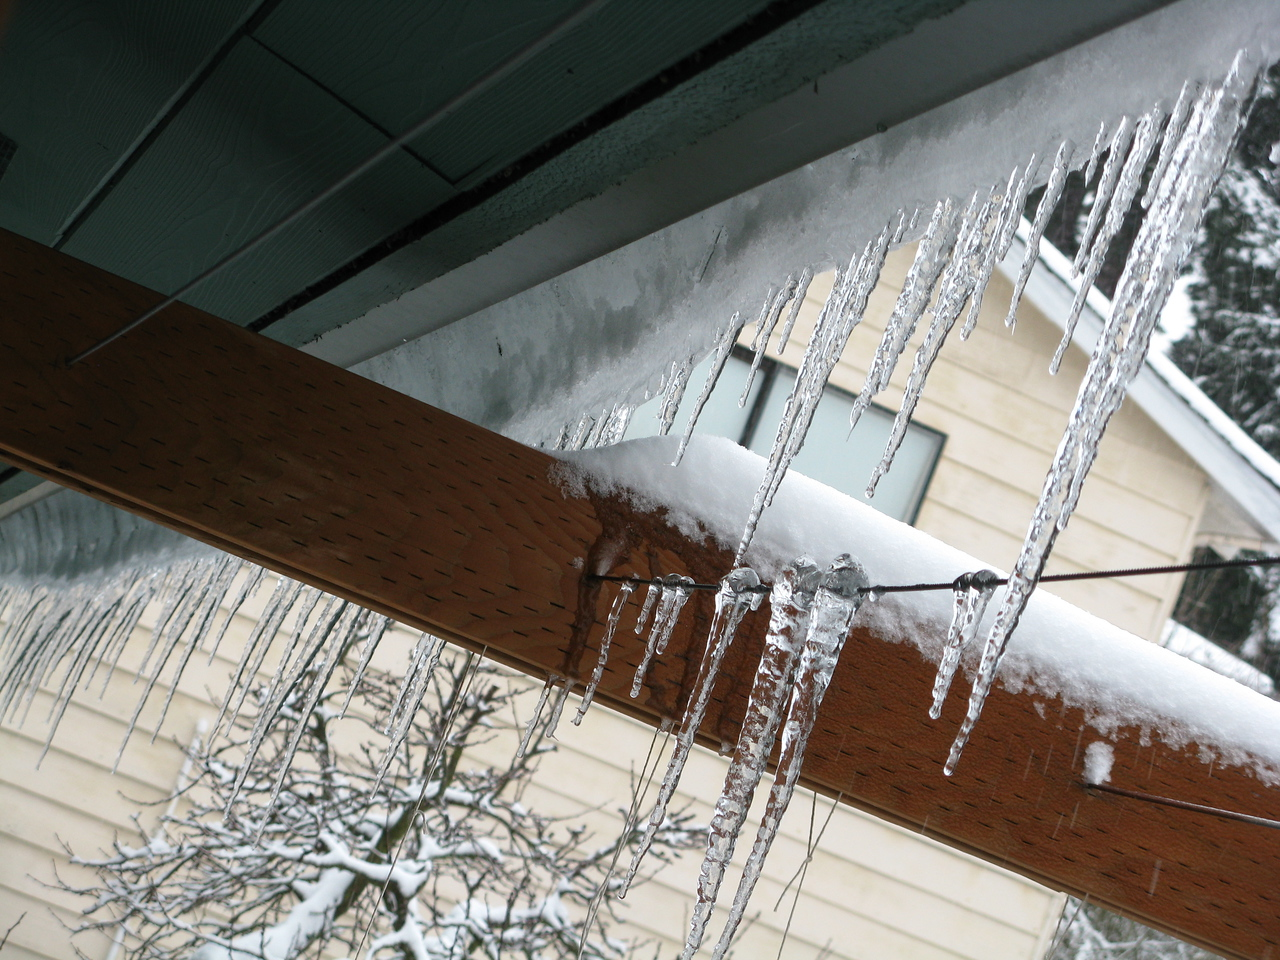 These are icicles hanging from the roof above our south deck.